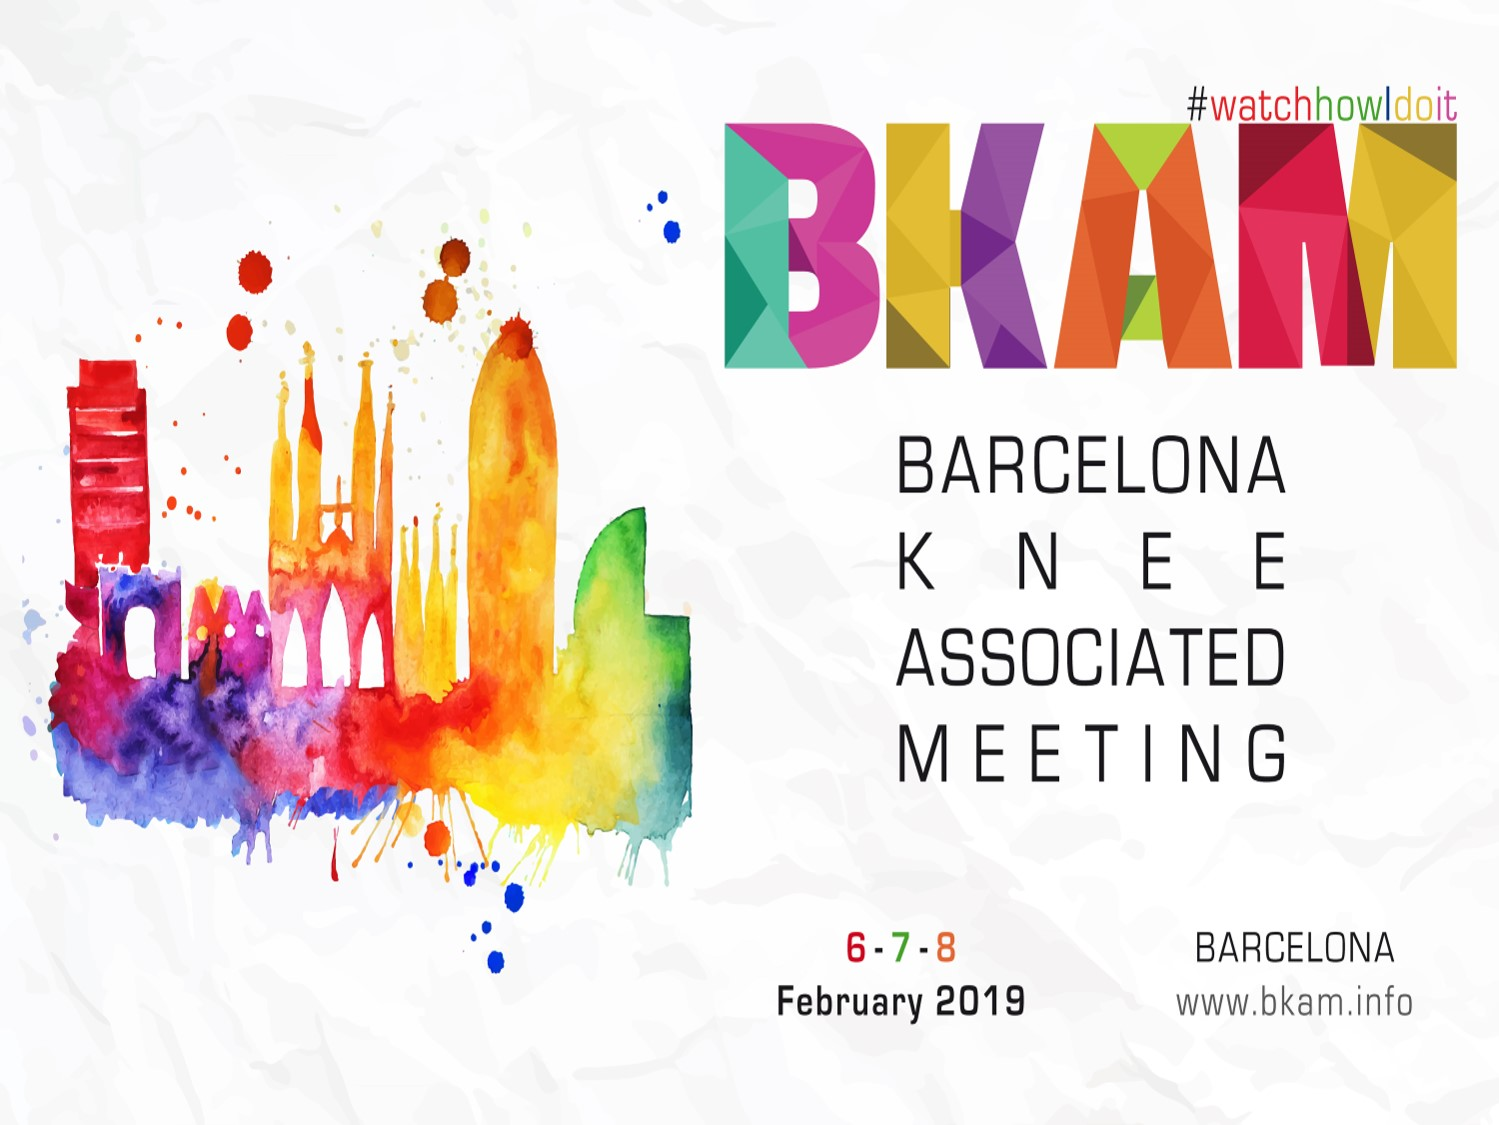 Barcelona Knee Associated Meeting